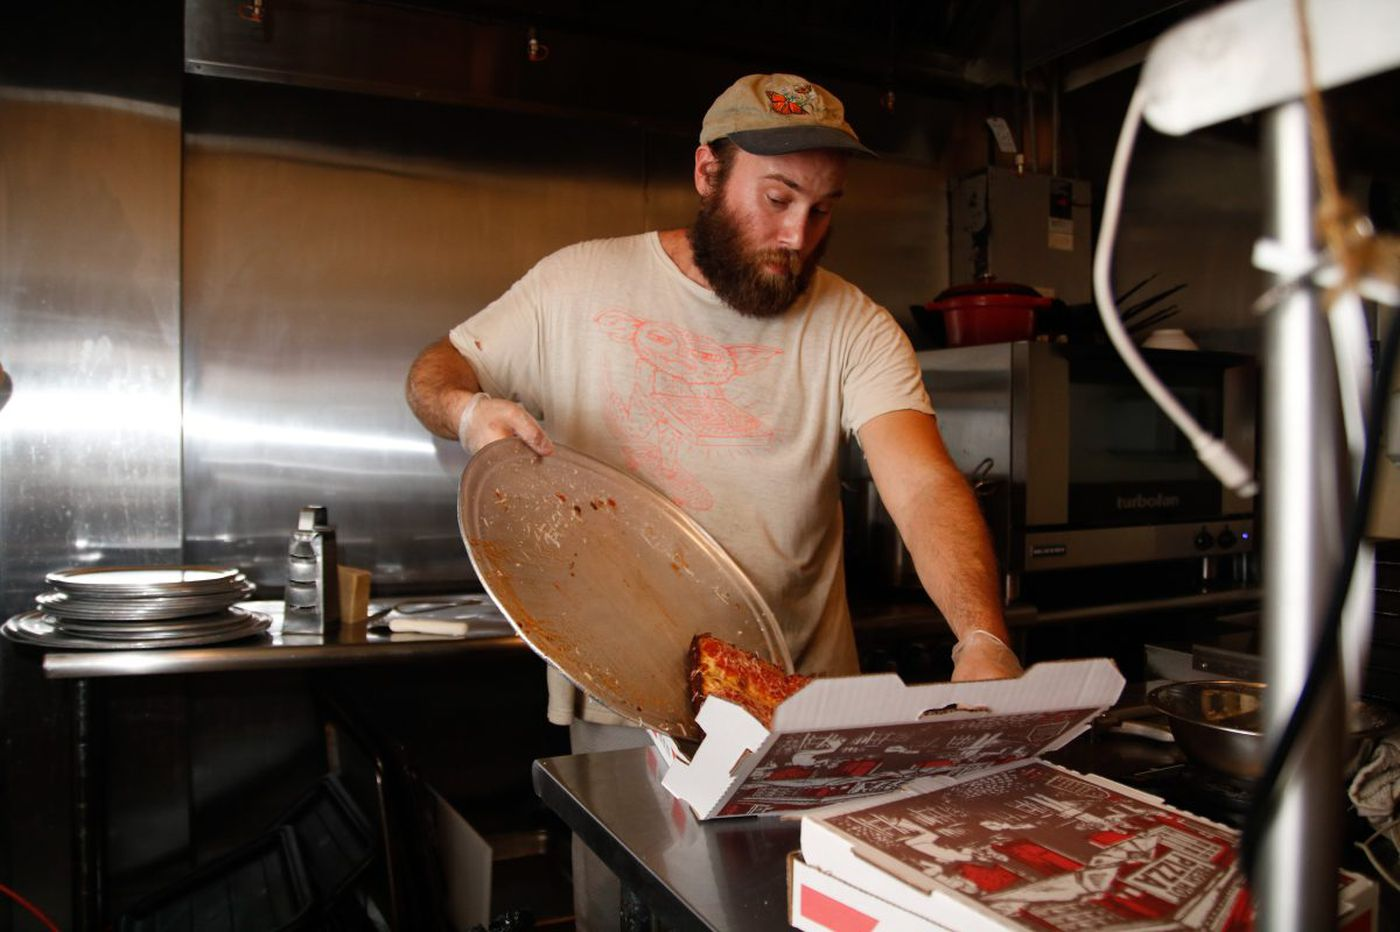 How Instagram turned @Pizza_Gutt into a Philly pizza star